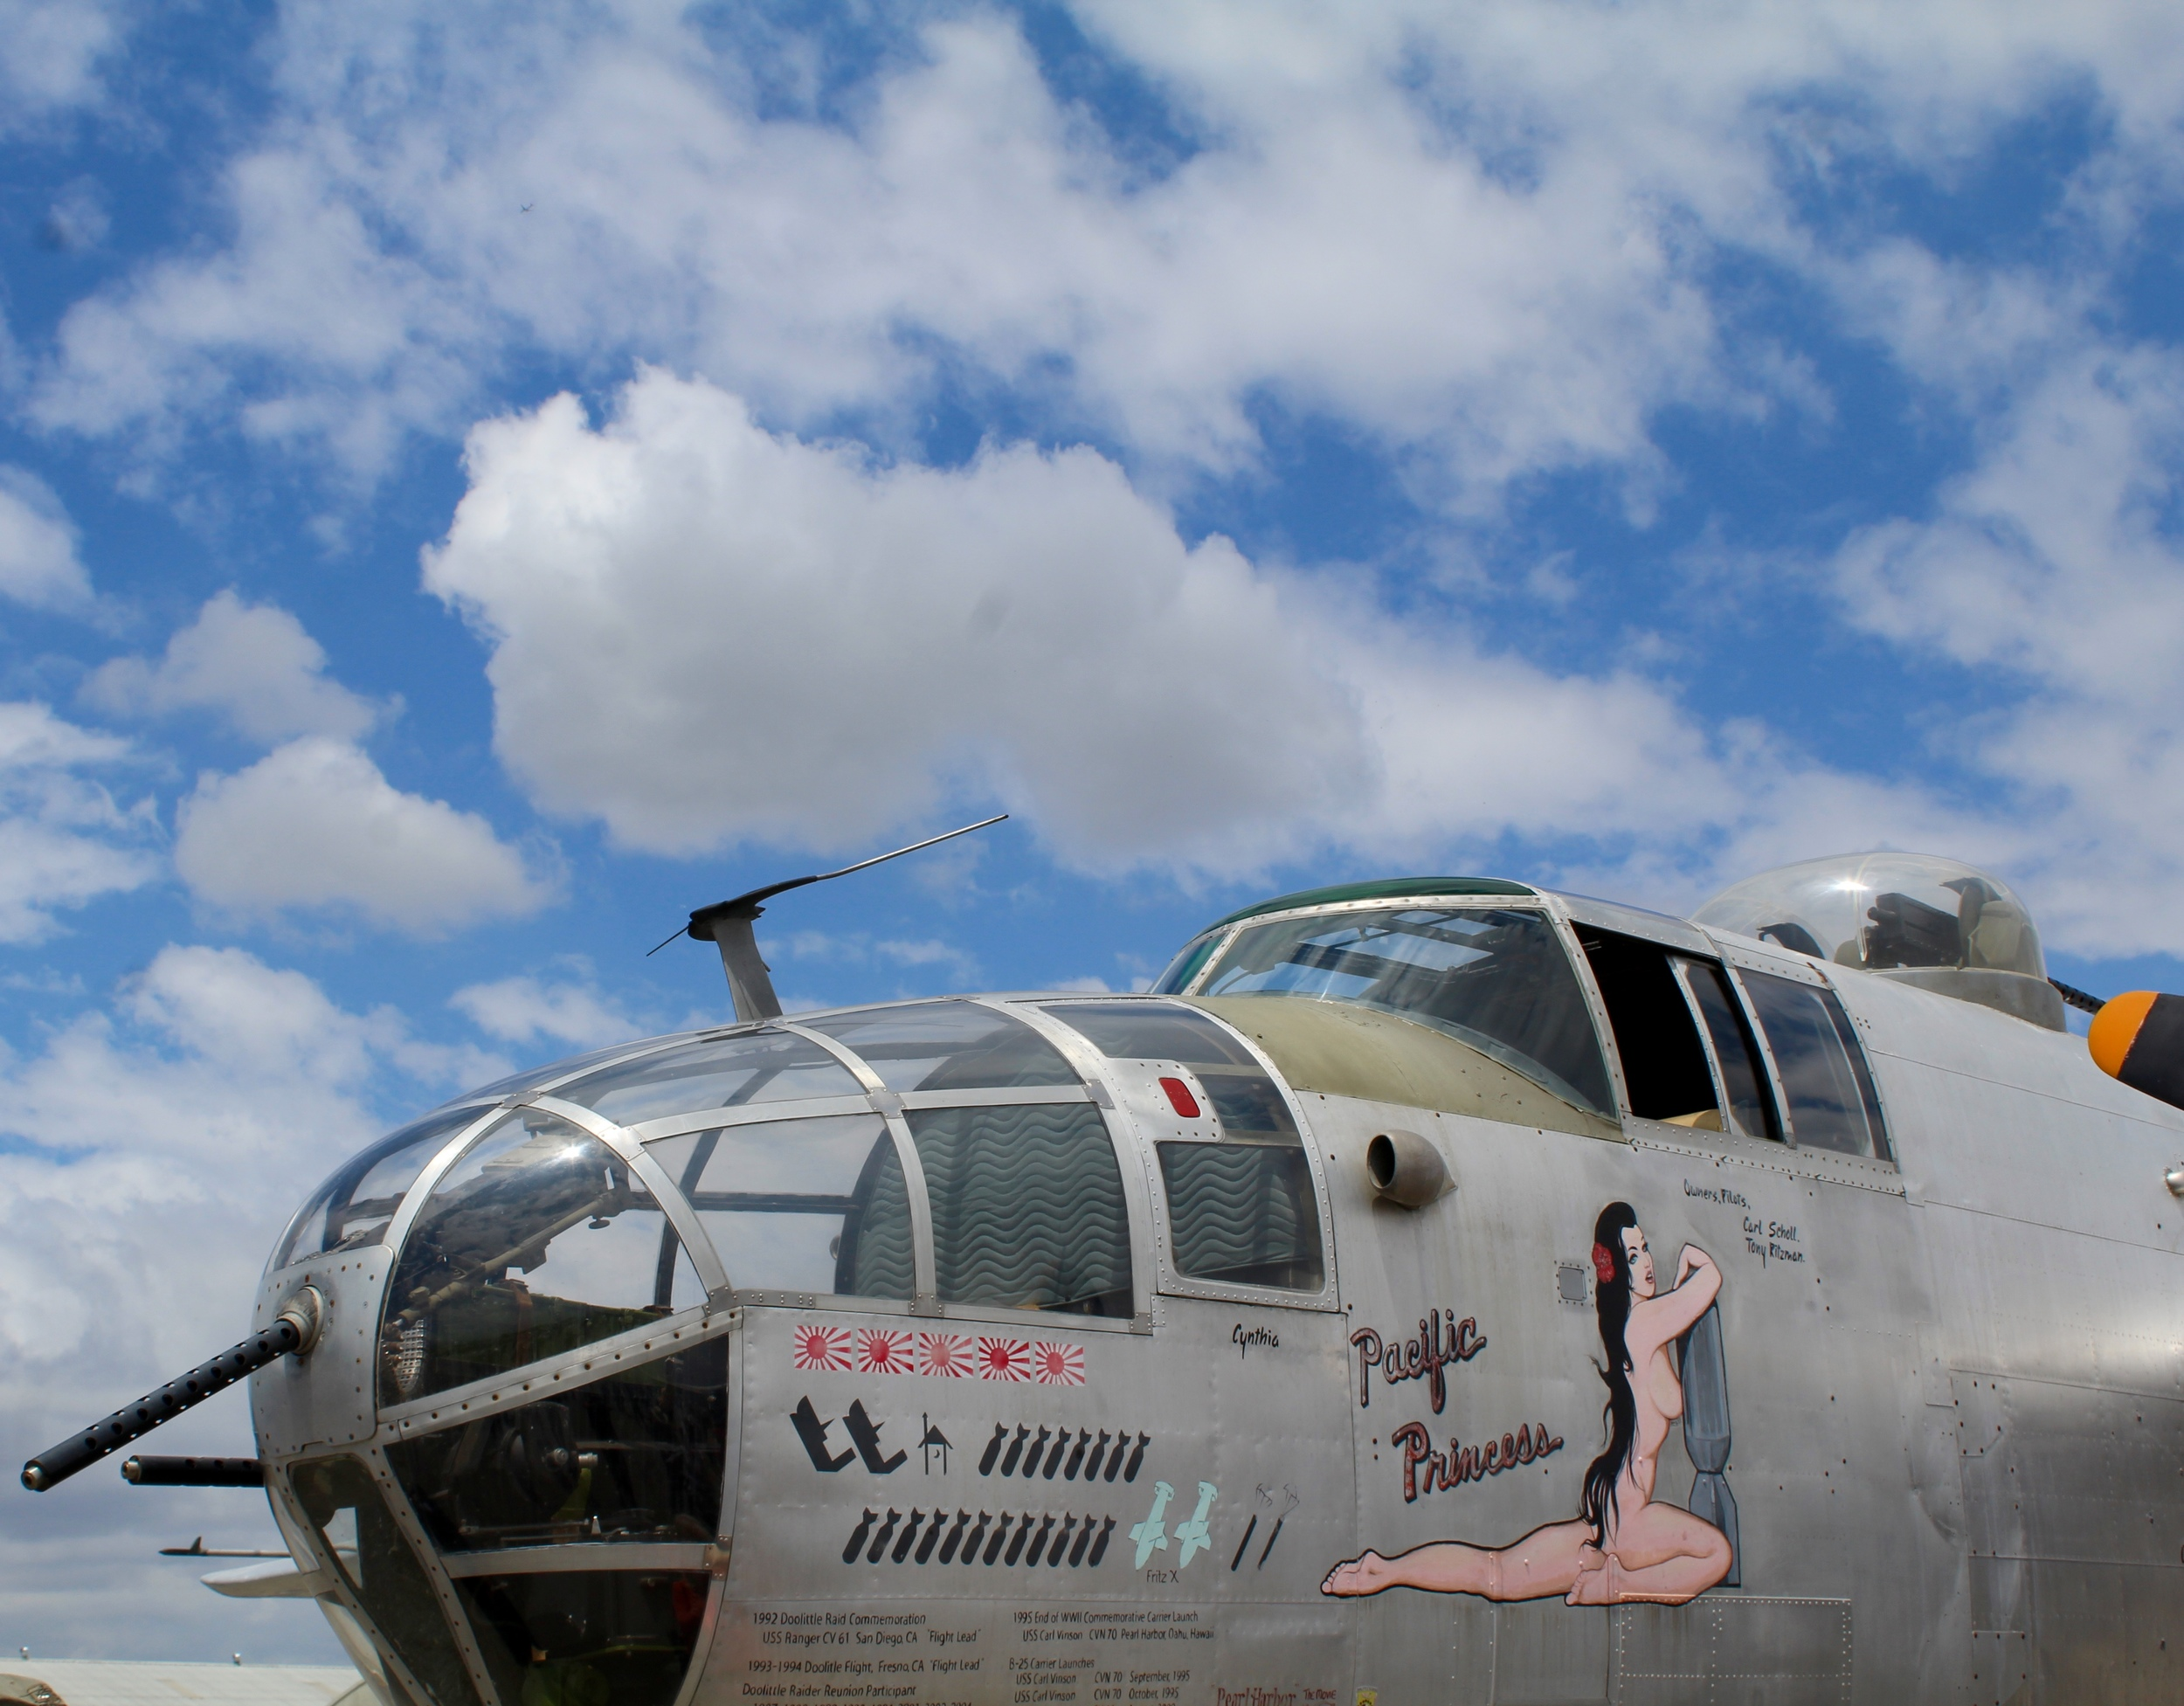 My sons' favorite plane - they really respect the Mitchell Bomber and its role in the Doolittle Raids. That's why they took so, so, so, so many photos of the nose art.